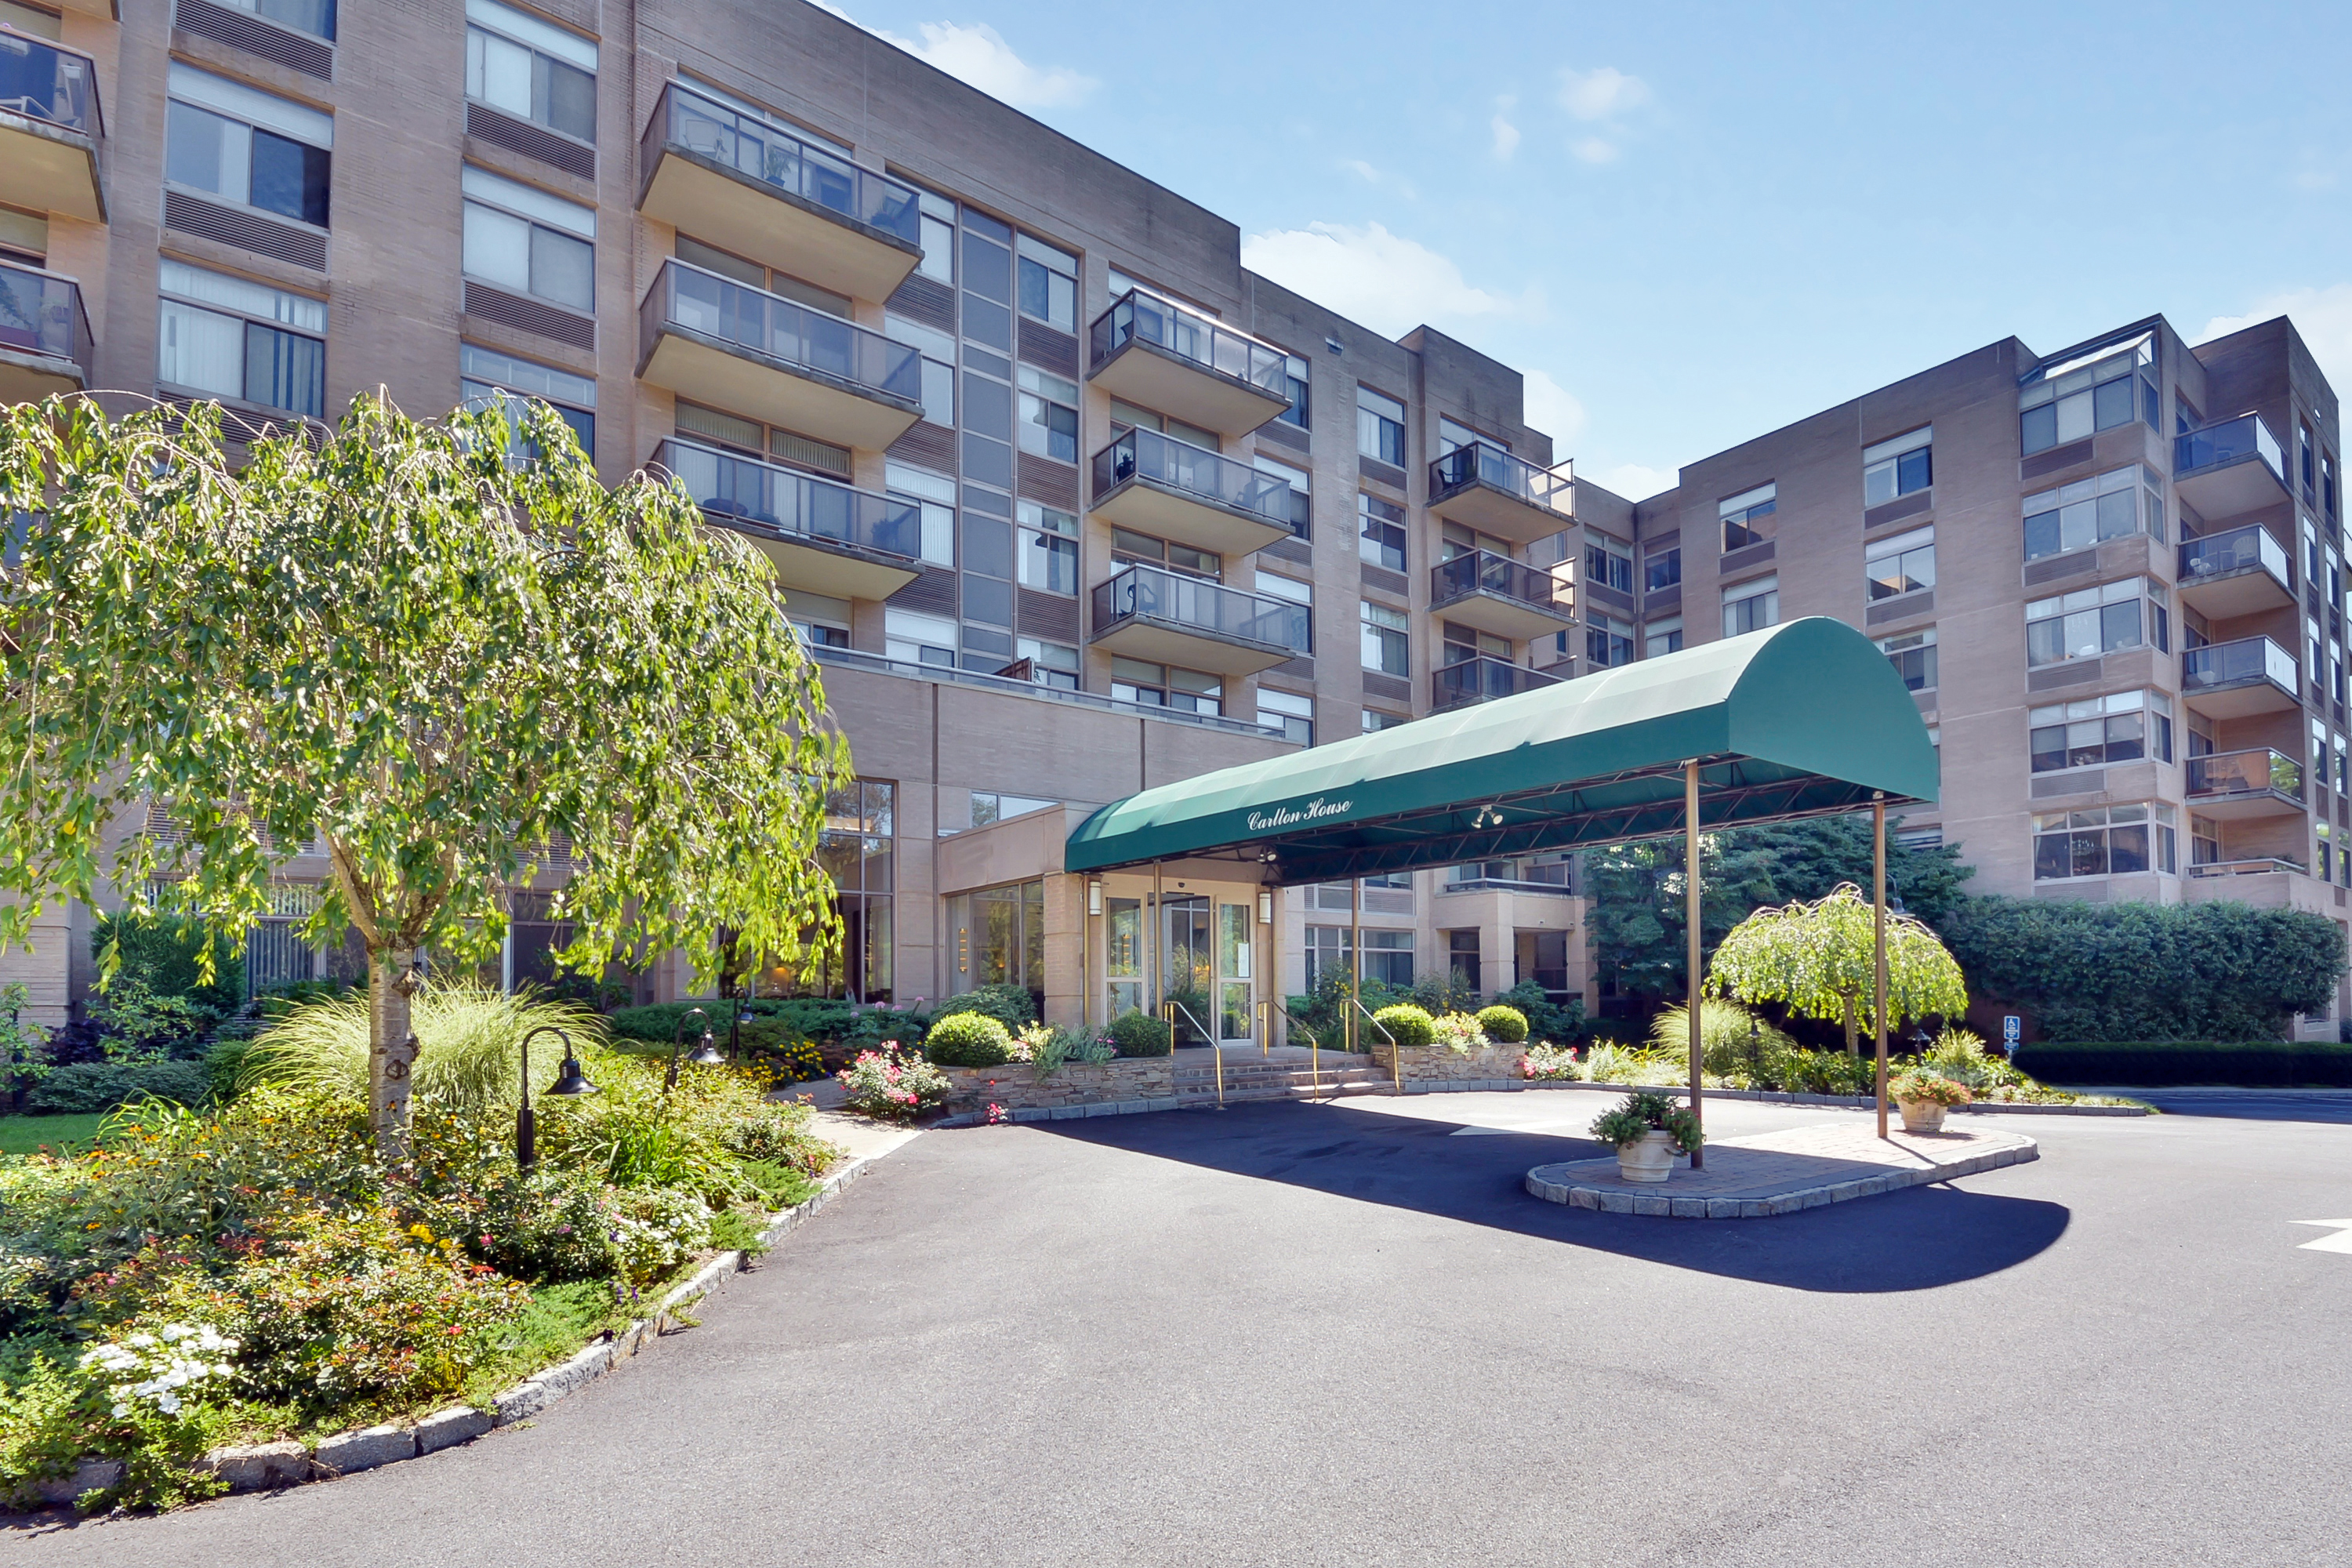 Condominium for Sale at Sunny 2 Bedroom Treetop Views 35 North Chatsworth Avenue 4G Larchmont, New York 10538 United States